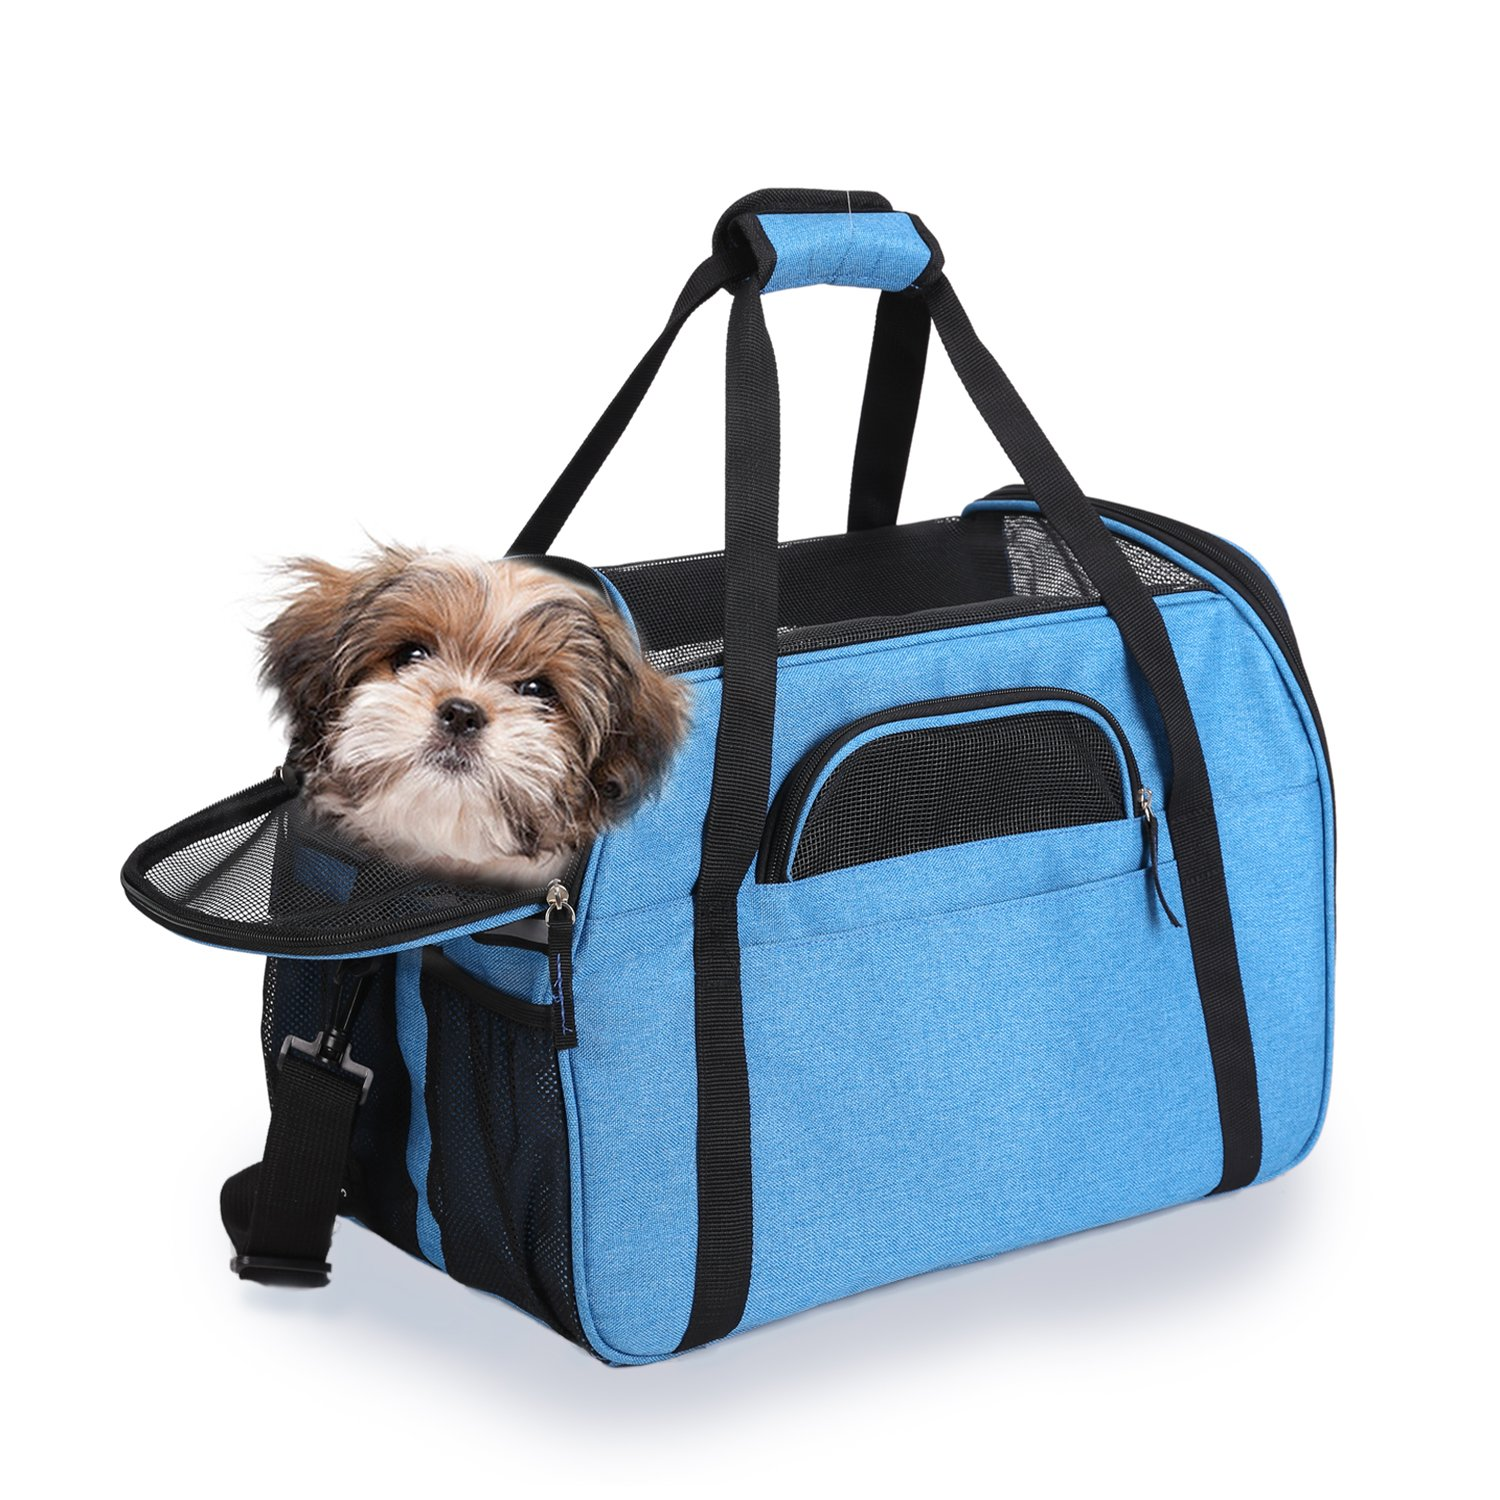 Jespet Soft Sided Pet Carrier Comfort 19'' for Travel, Portable Dog Tote Bag for Small Animals, Cats, Kitten, Puppy, Turquoise